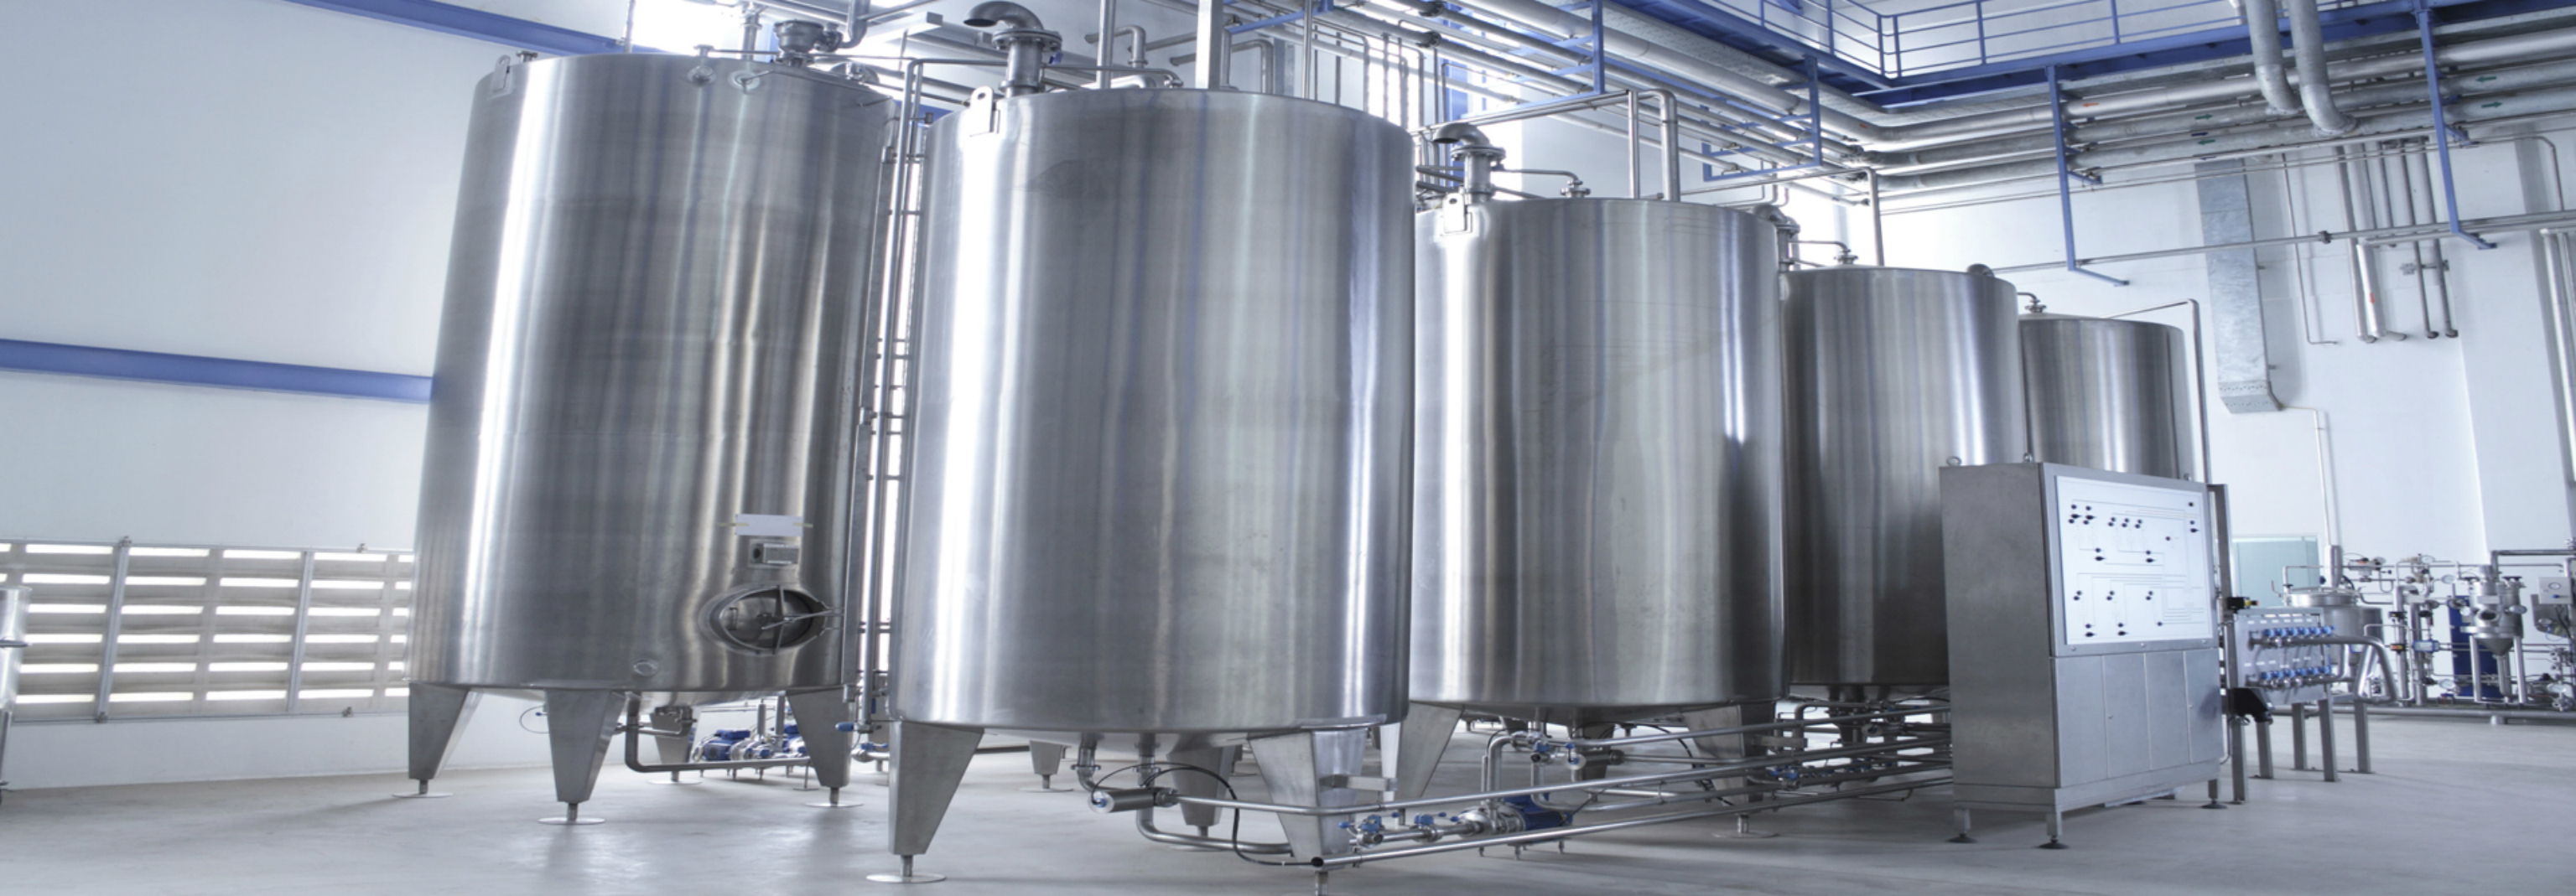 Milk Processing Line yogurt production cheese production butter manufacturing